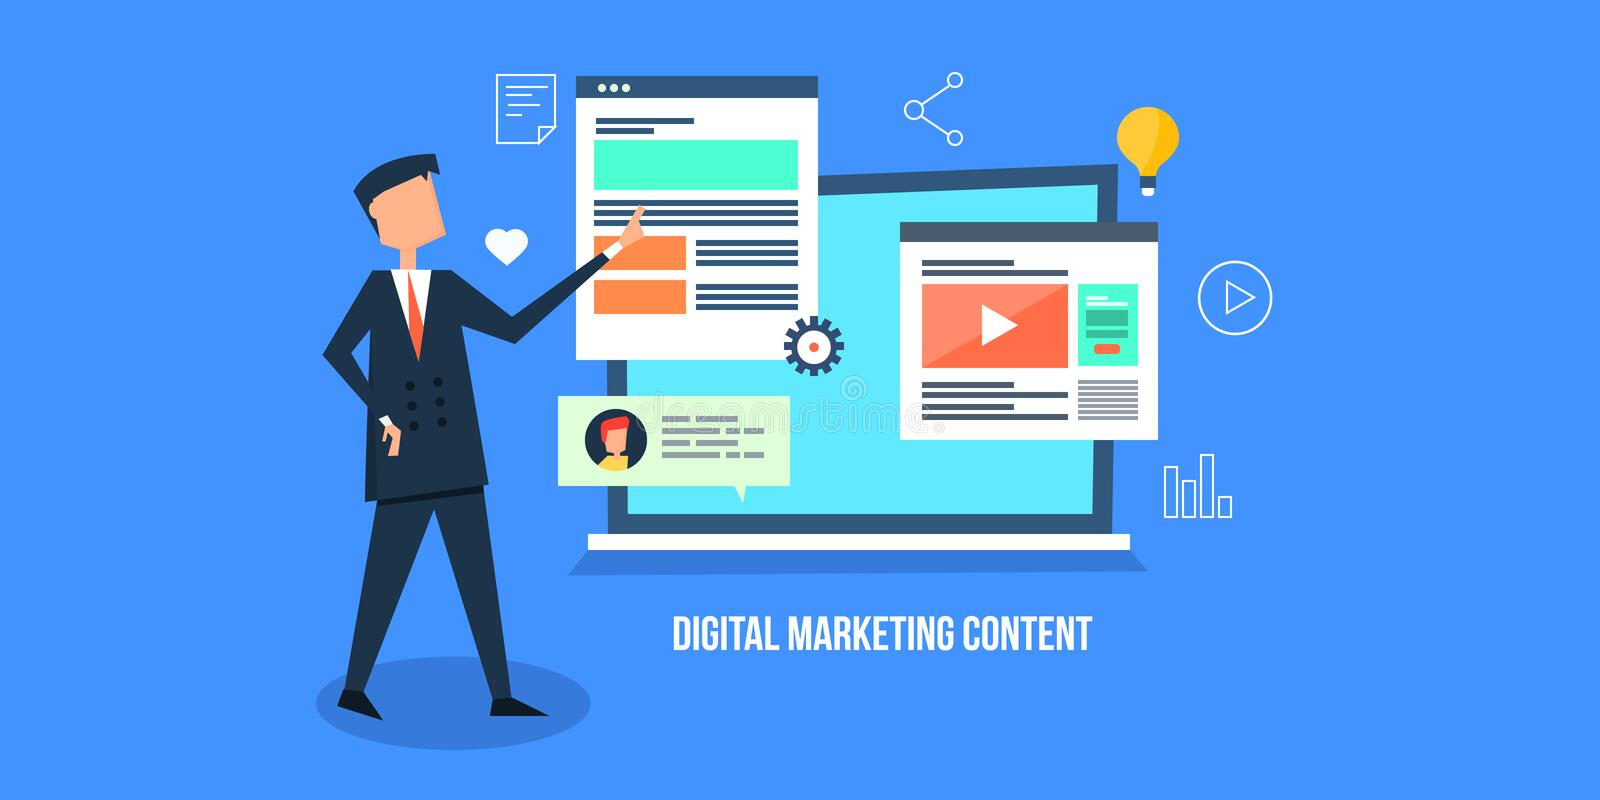 Flat design concept of digital marketing, content for internet media promotion. Businessman identifying contents for digital marketing campaign, video, blog royalty free illustration